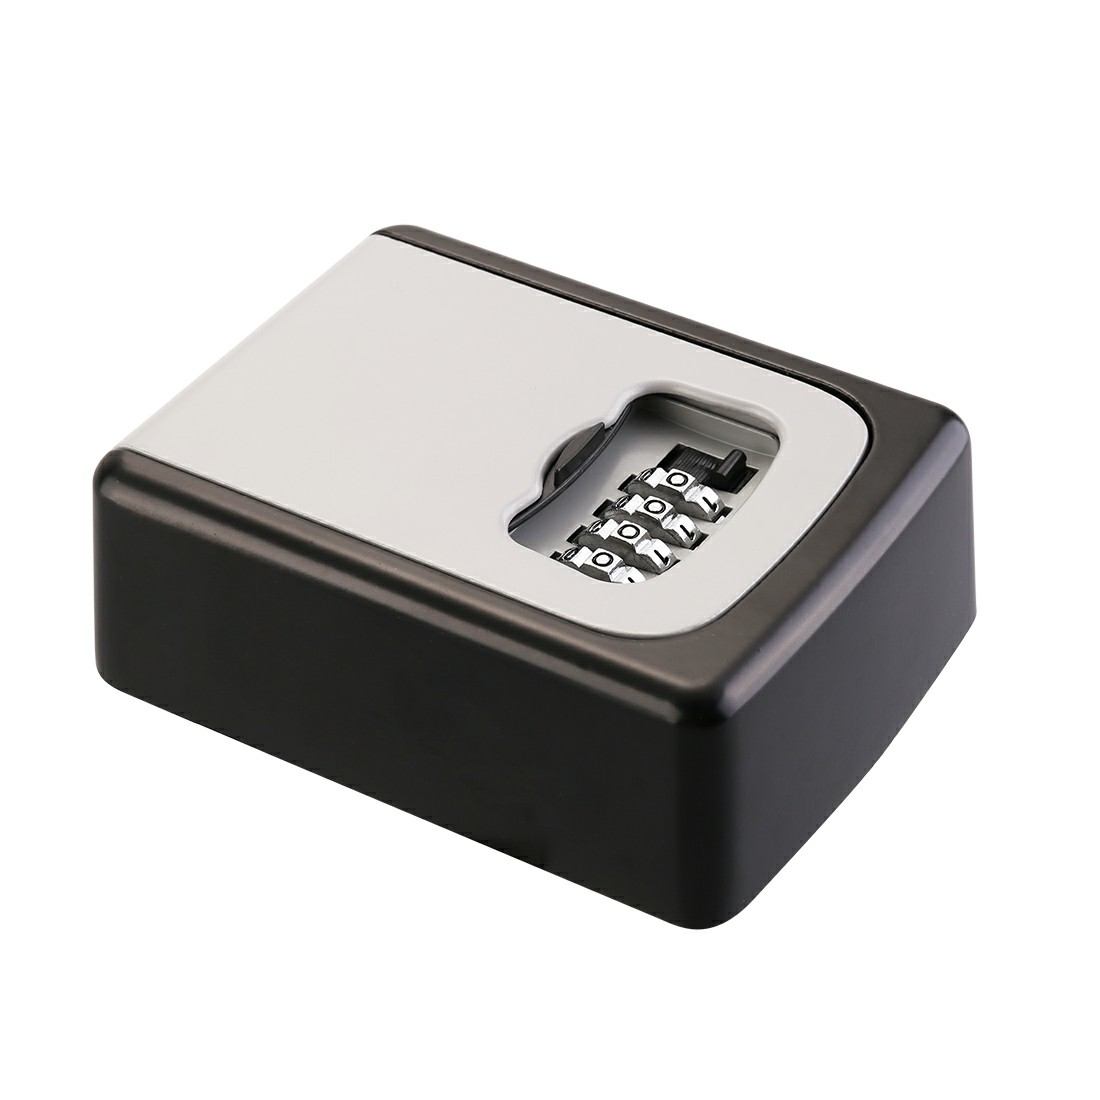 4 Digit Outdoor Security Wall Mounted Key Safe Box Code Safer Lock